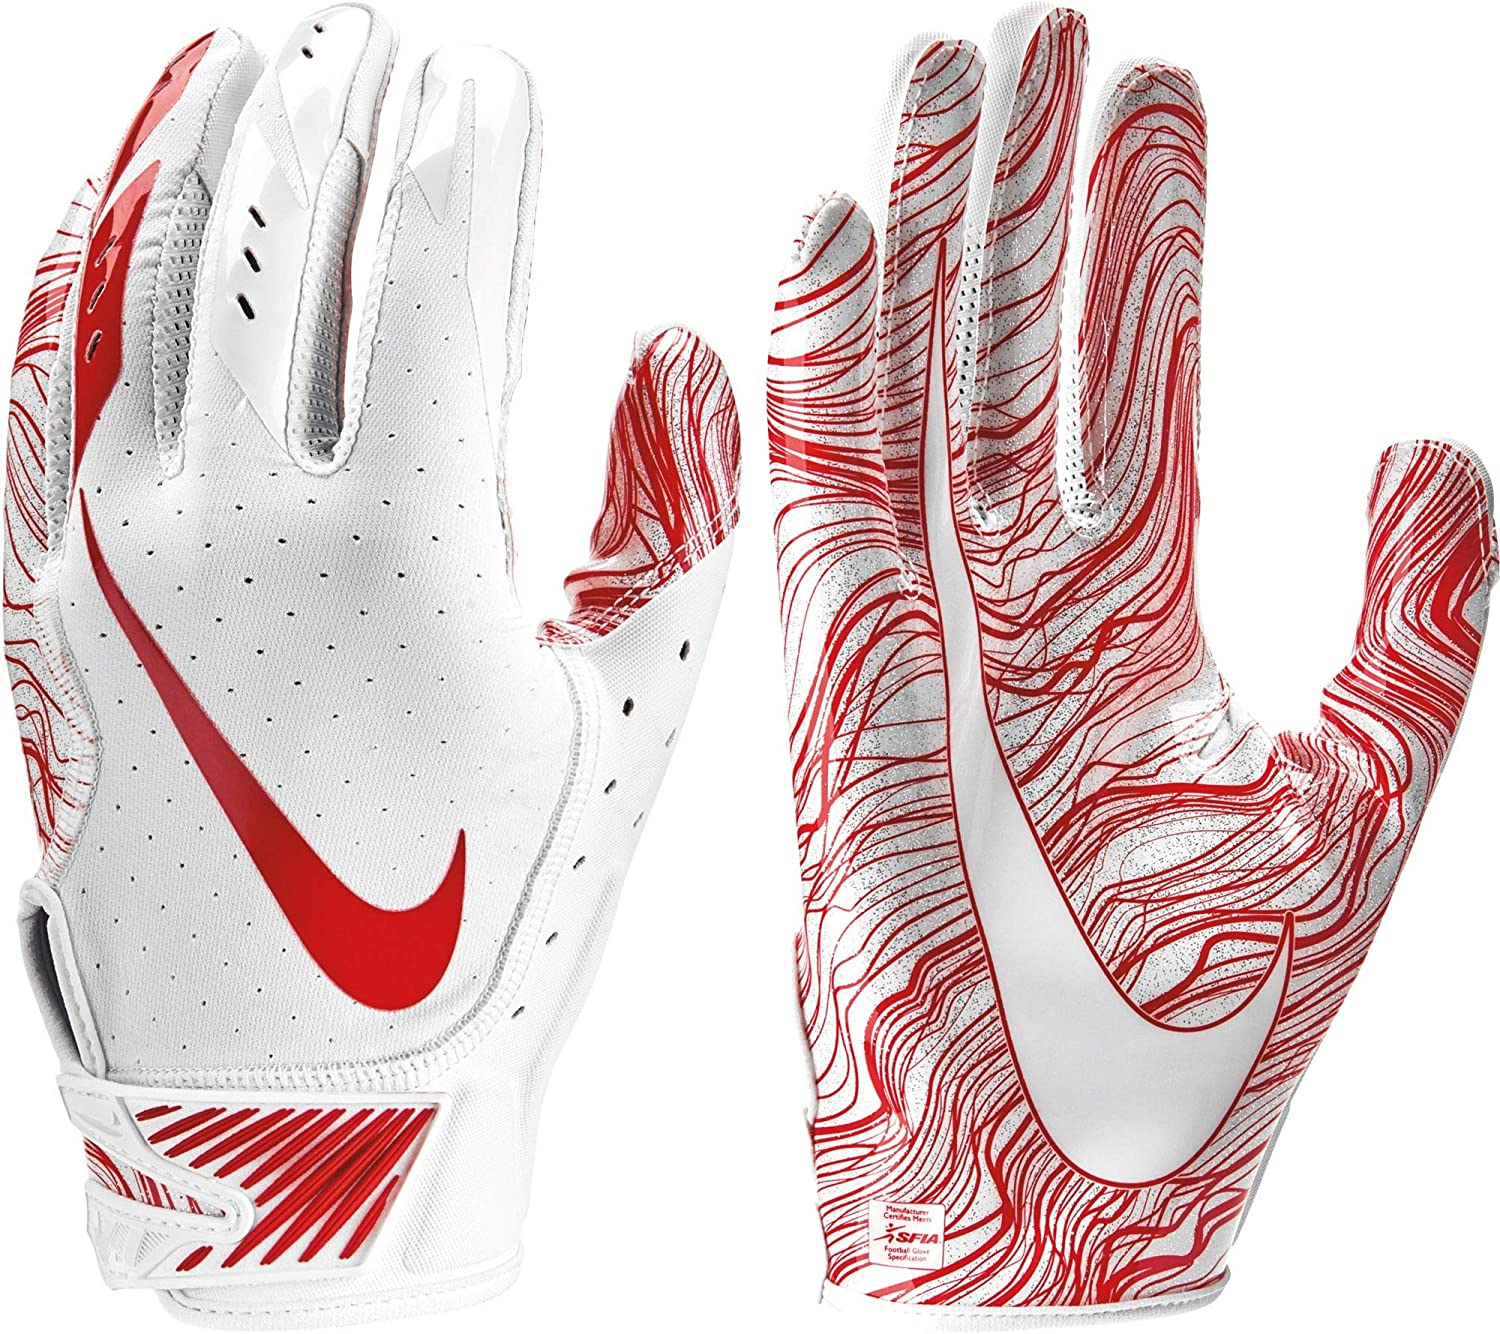 c4abe078265 Men s Nike Vapor Jet 5.0 Football Gloves  Amazon.co.uk  Sports   Outdoors